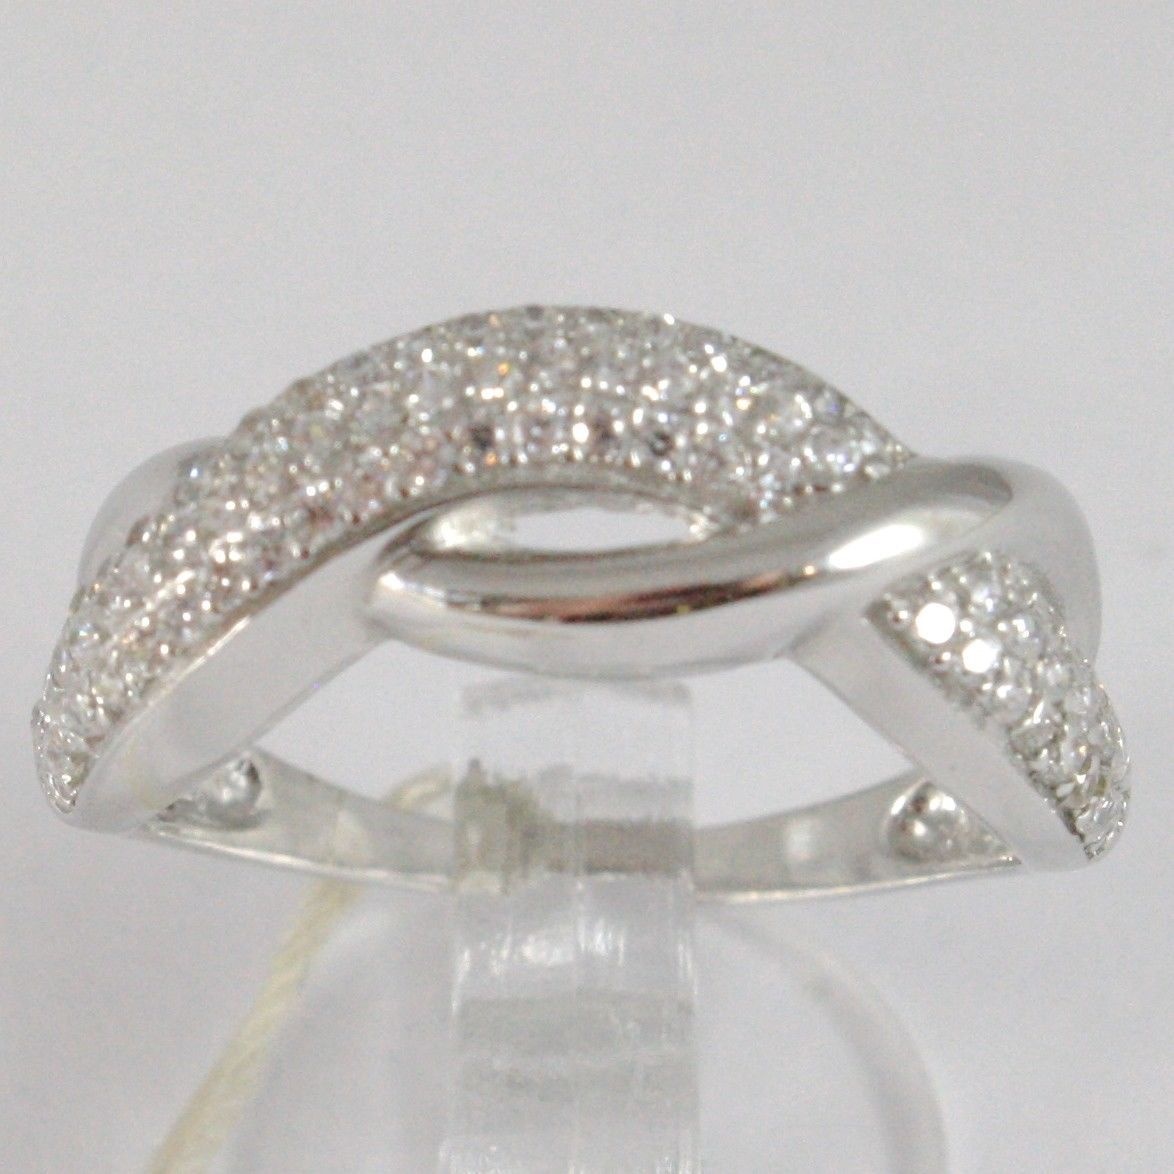 White Gold Ring 750 18k, veretta with Cubic Zirconium, Braided, Crimped